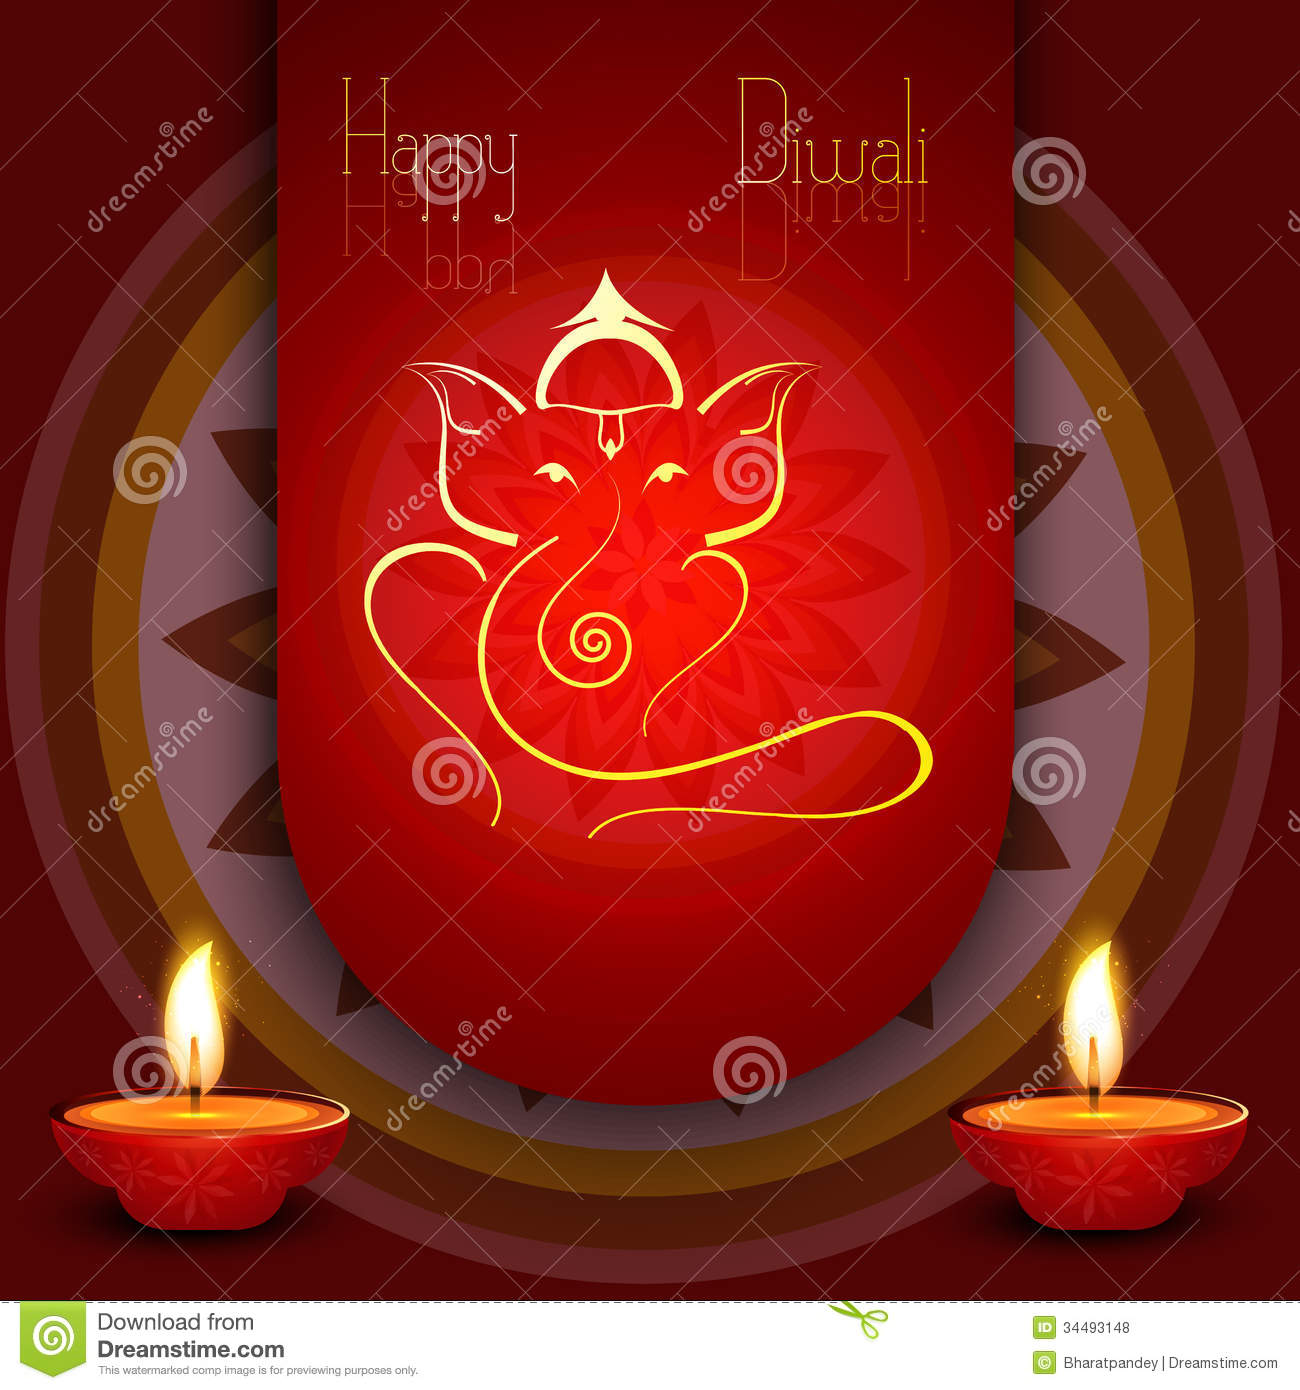 Beautiful diwali greeting card colorful stock illustration beautiful diwali card colorful rangoli artistic lord ganesha royalty free stock photos m4hsunfo